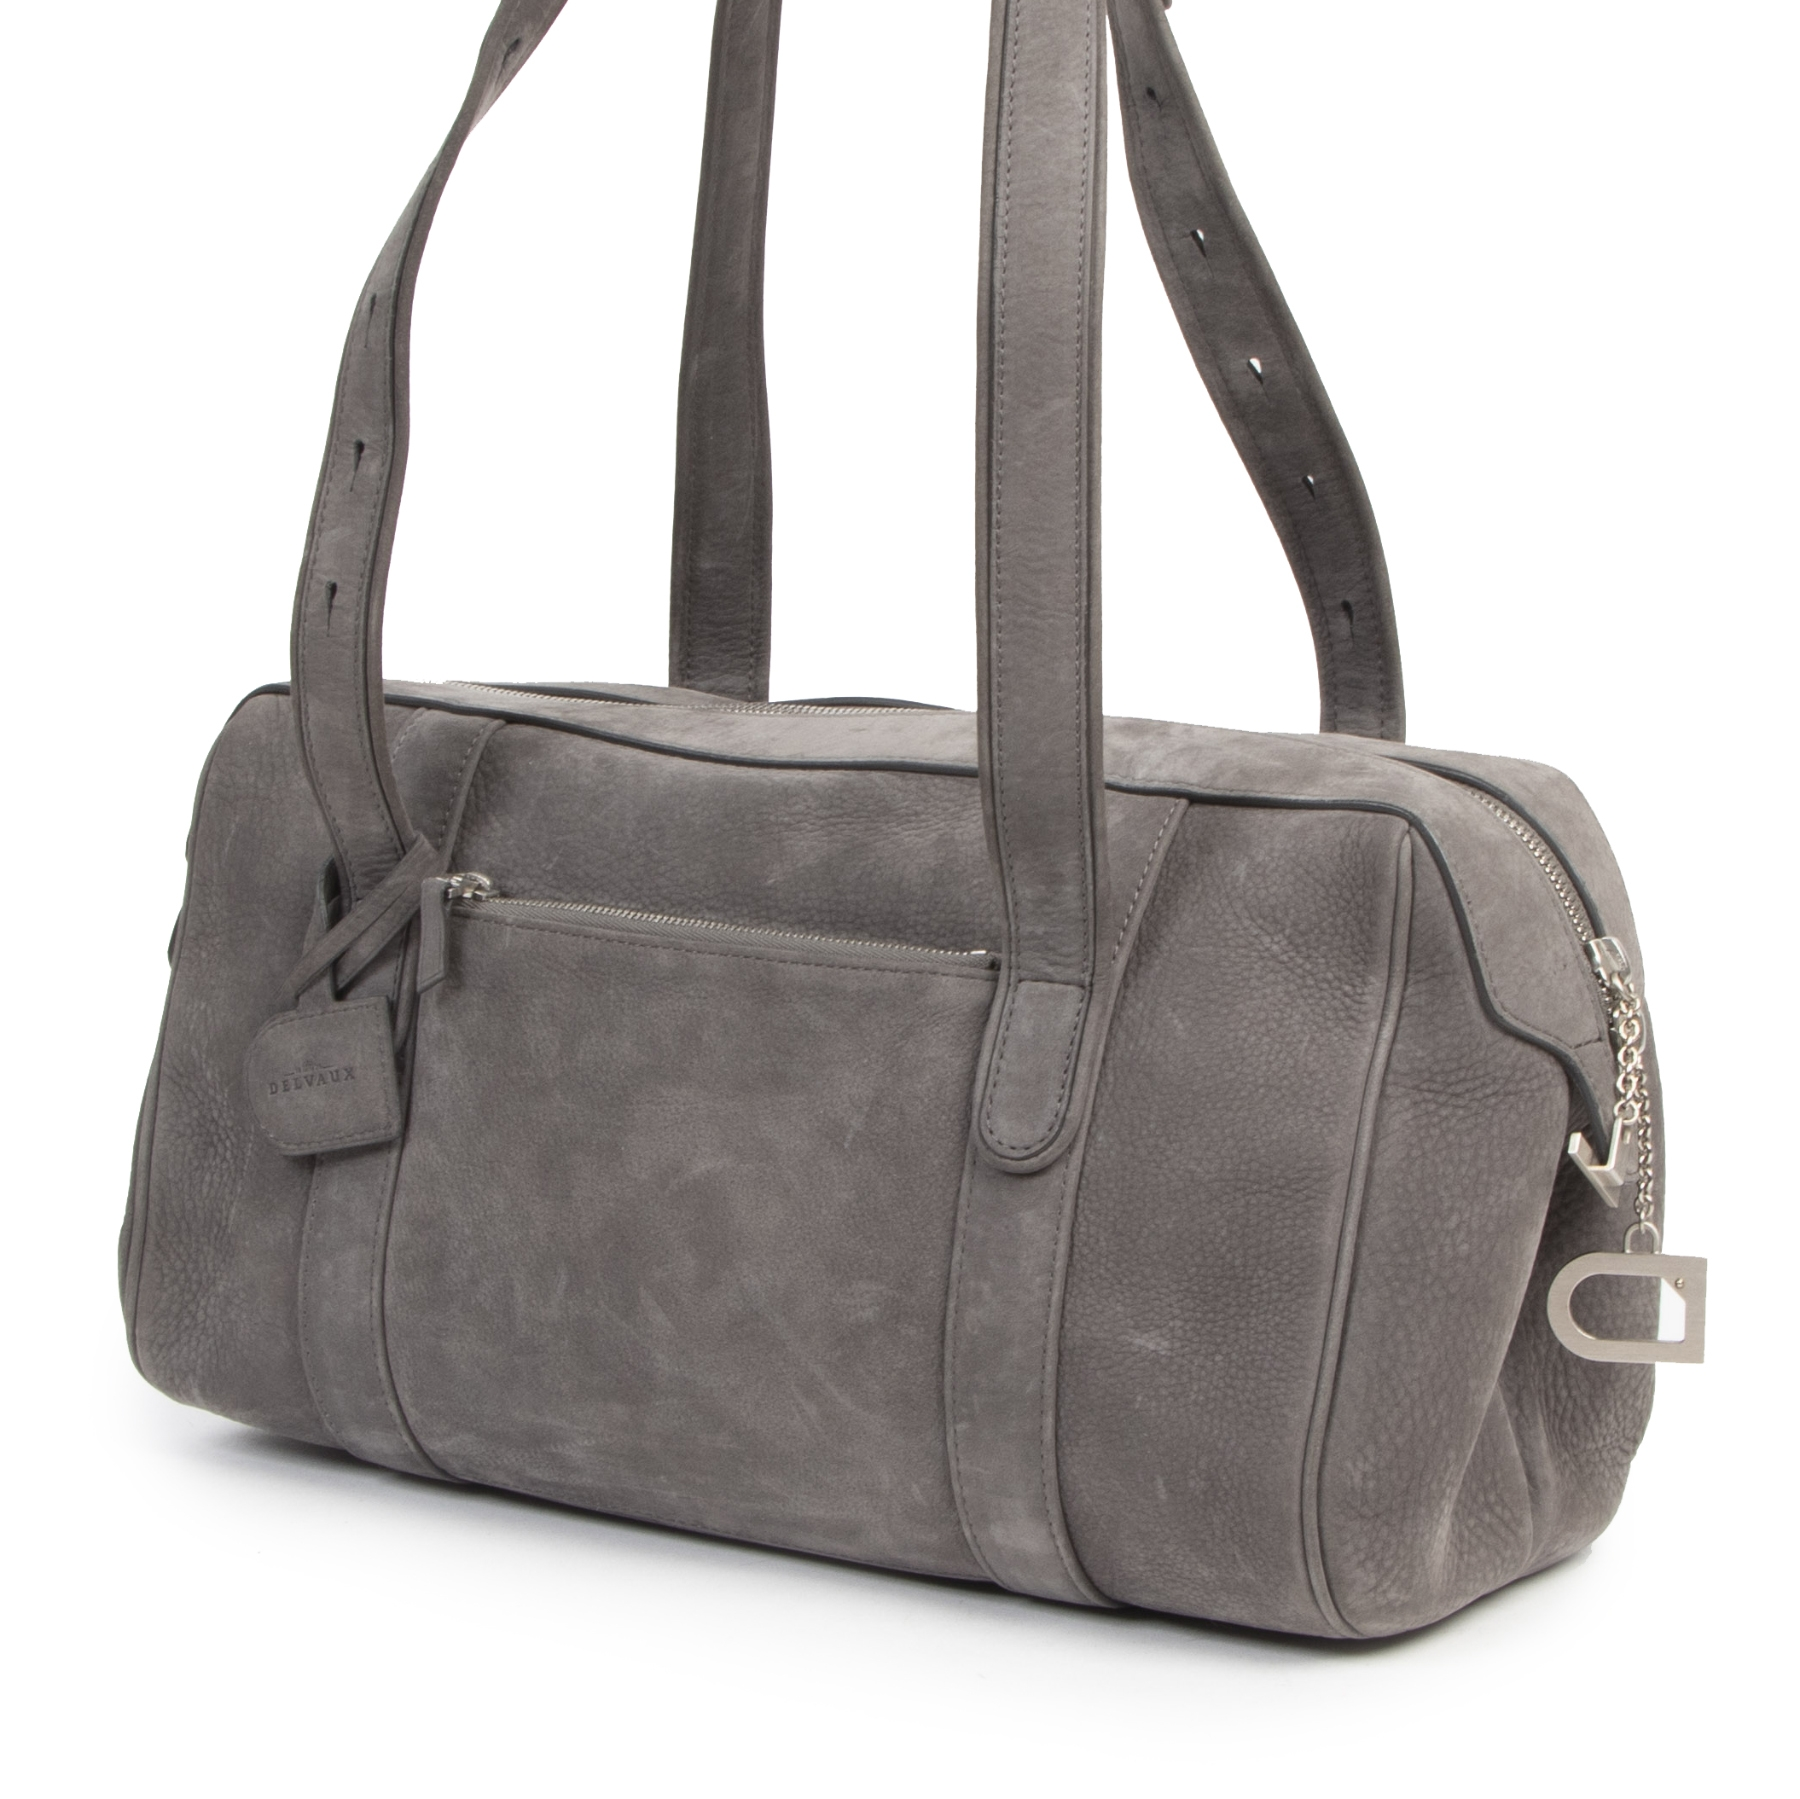 Authentique seconde-main vintage Delvaux Grey Loft Shoulder Bag achète en ligne webshop LabelLOV